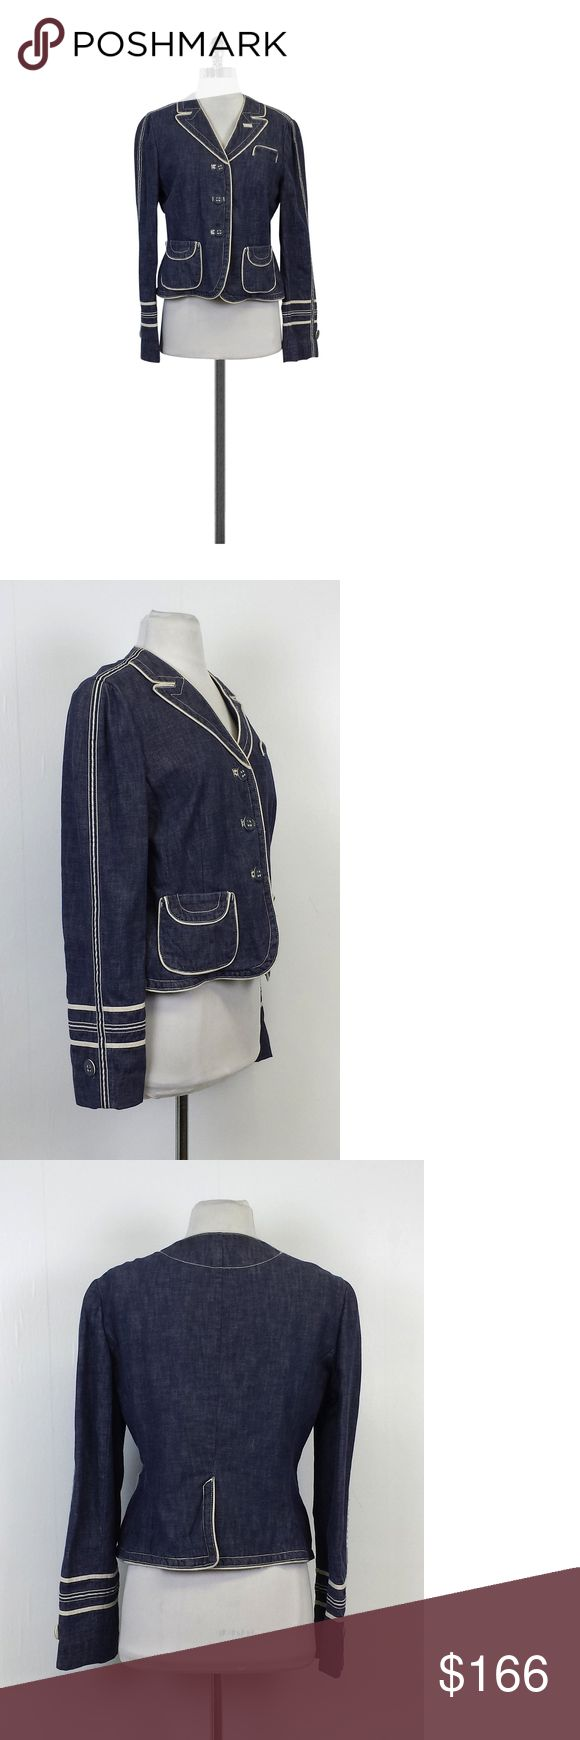 """Marc Jacobs- Blue Denim Jacket Sz 12 This blue denim jacket with white trims is perfect for the office. Wear it with a colorful pencil skirt and pumps! Size 12 Body 100% Cotton Buttons on front Side pockets White trims Shoulder to Hem 21.5"""" Marc Jacobs is an American born fashion designer who creates Italian-inspired women's and men's wear. His ready-to-wear collections and handbags are as popular as his couture collections. He is recently known for his charity work as well. Marc Jacobs…"""